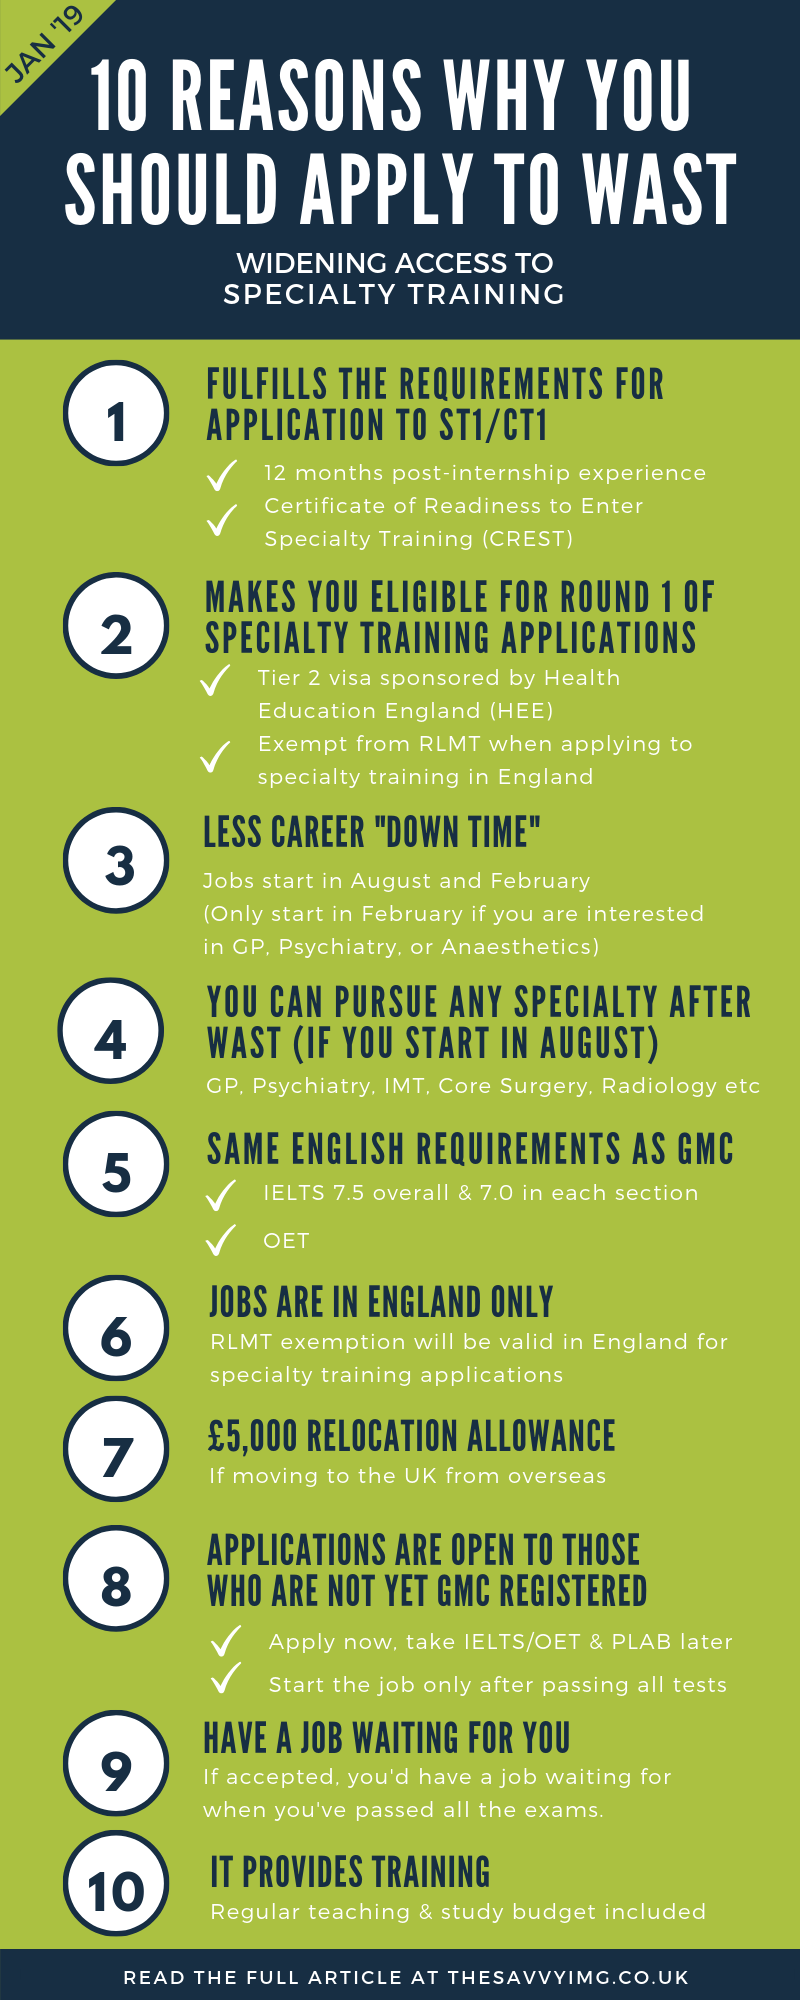 10 Reasons To Apply For The Widening Access To Specialty Training